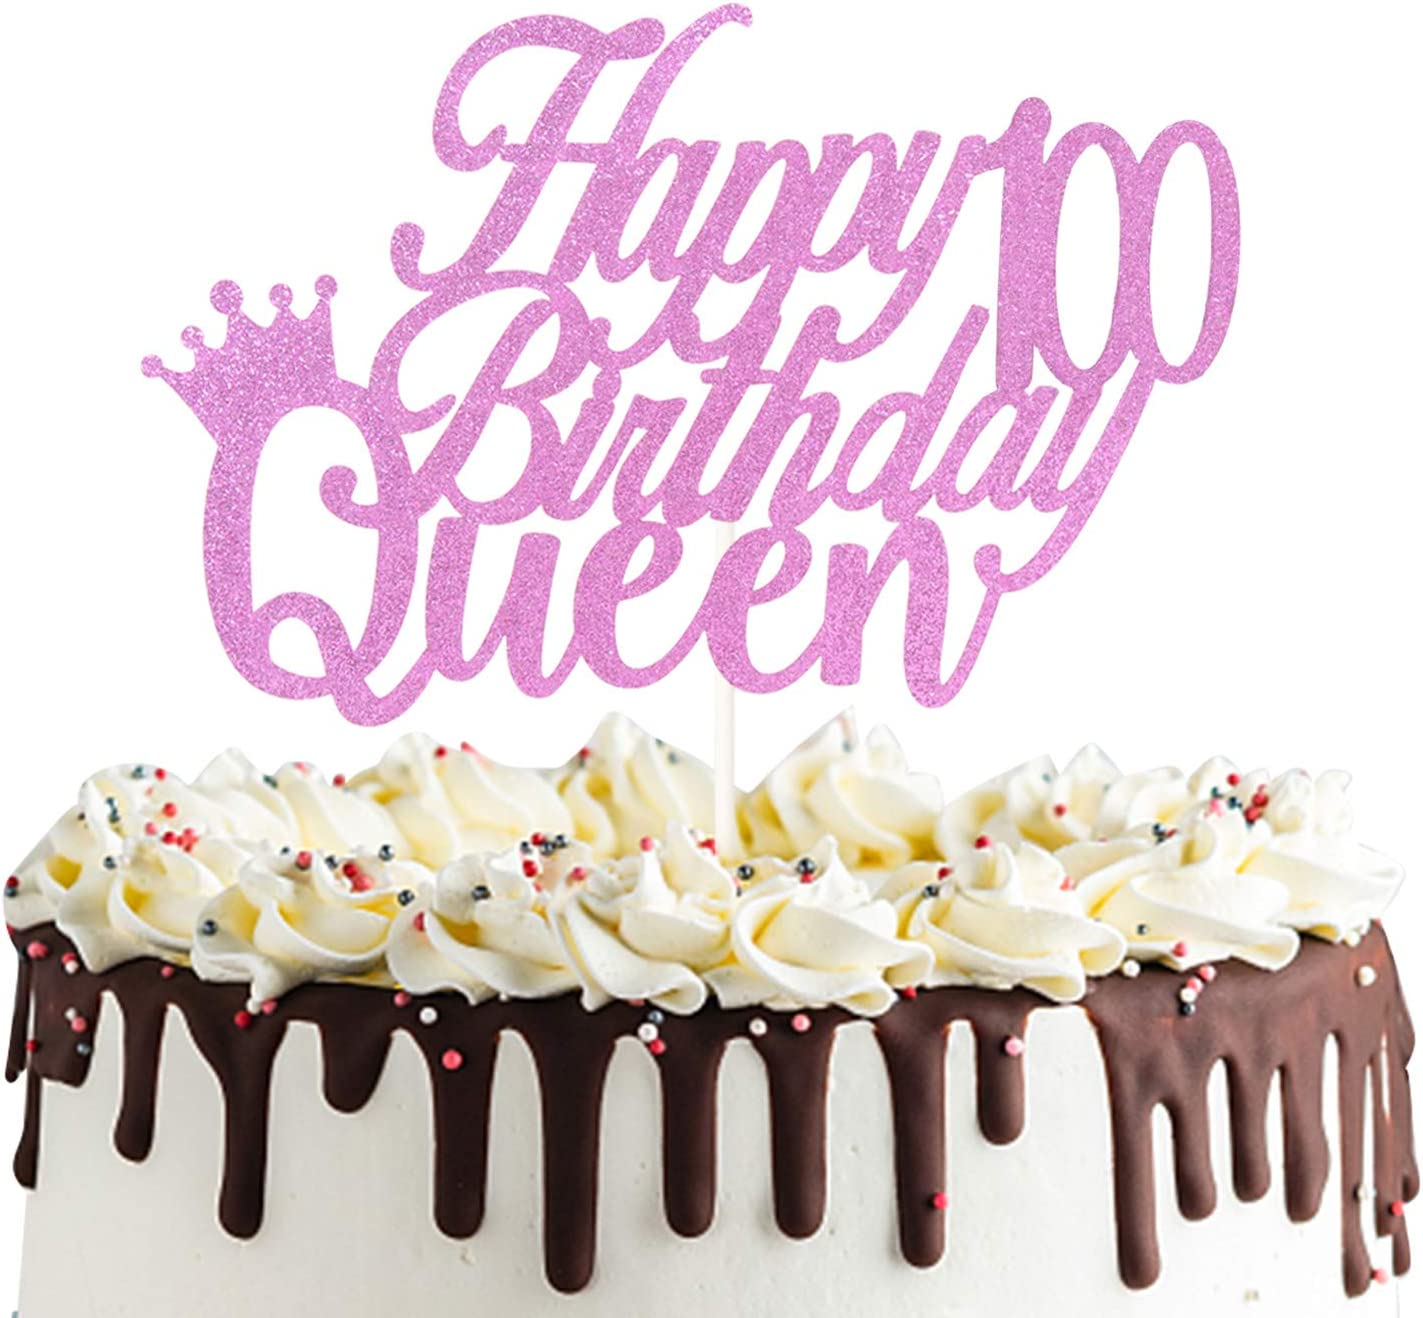 Happy 100th Queen Birthday Cake Topper, Cheers to 100 Years,100& Fabulous, 100th Birthday Party Decorations